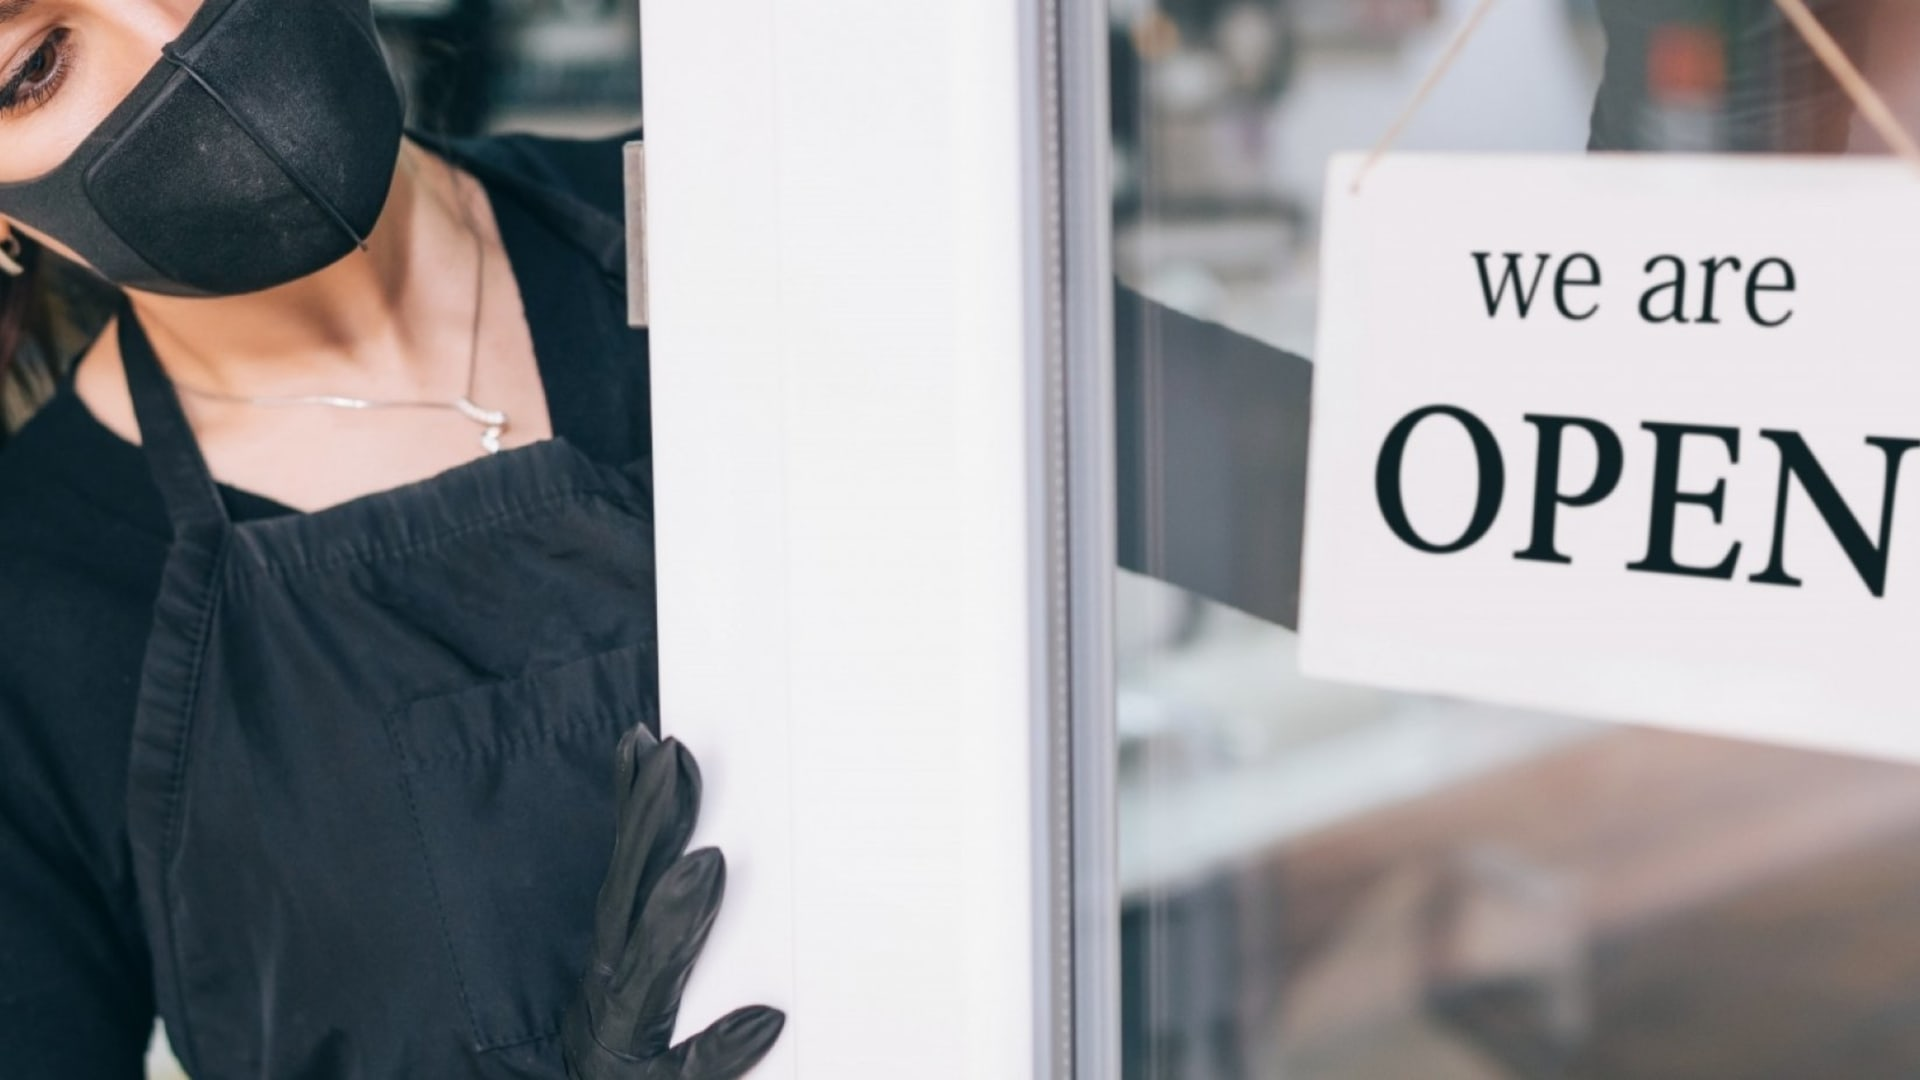 Black Friday Is Going to Look Very Different. What Your Business Should Do Now to Prepare